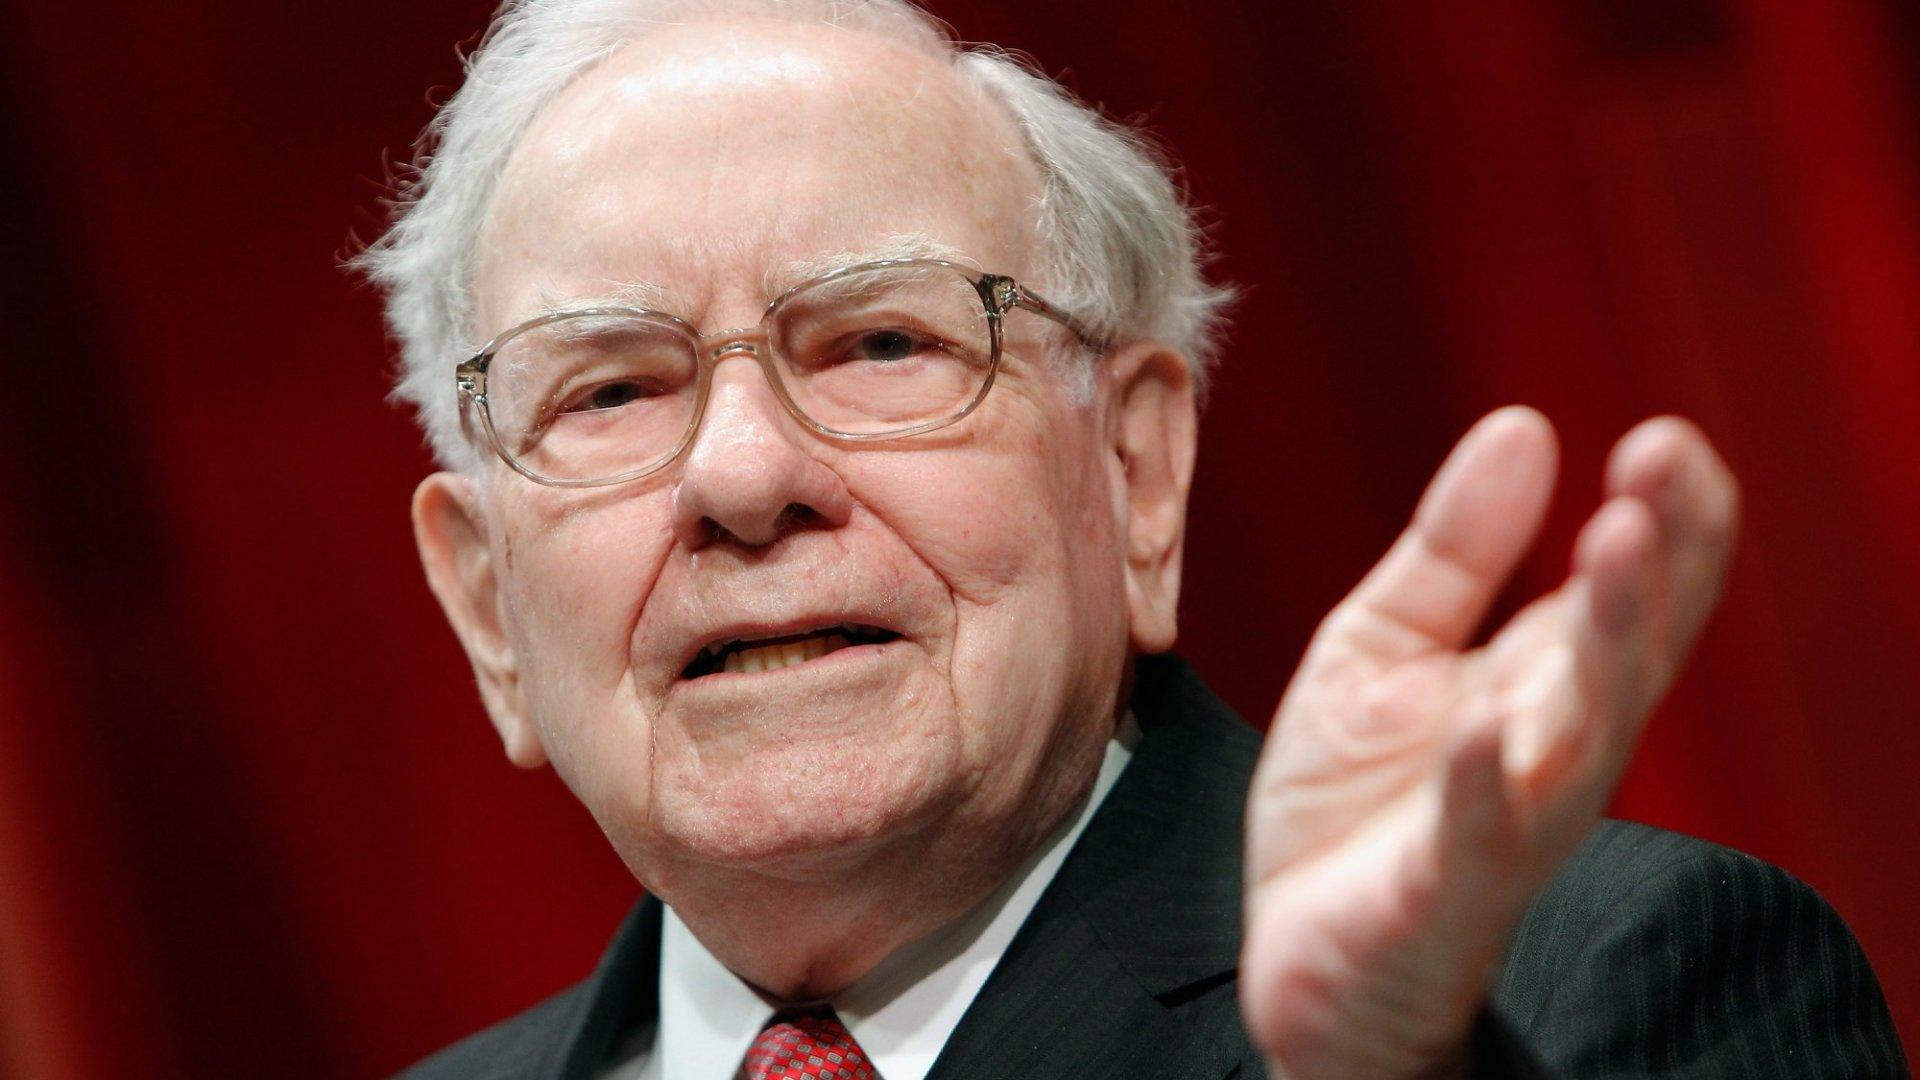 Warren Buffett Says These Are the 6 Most Important Things You Should Do With Your Money